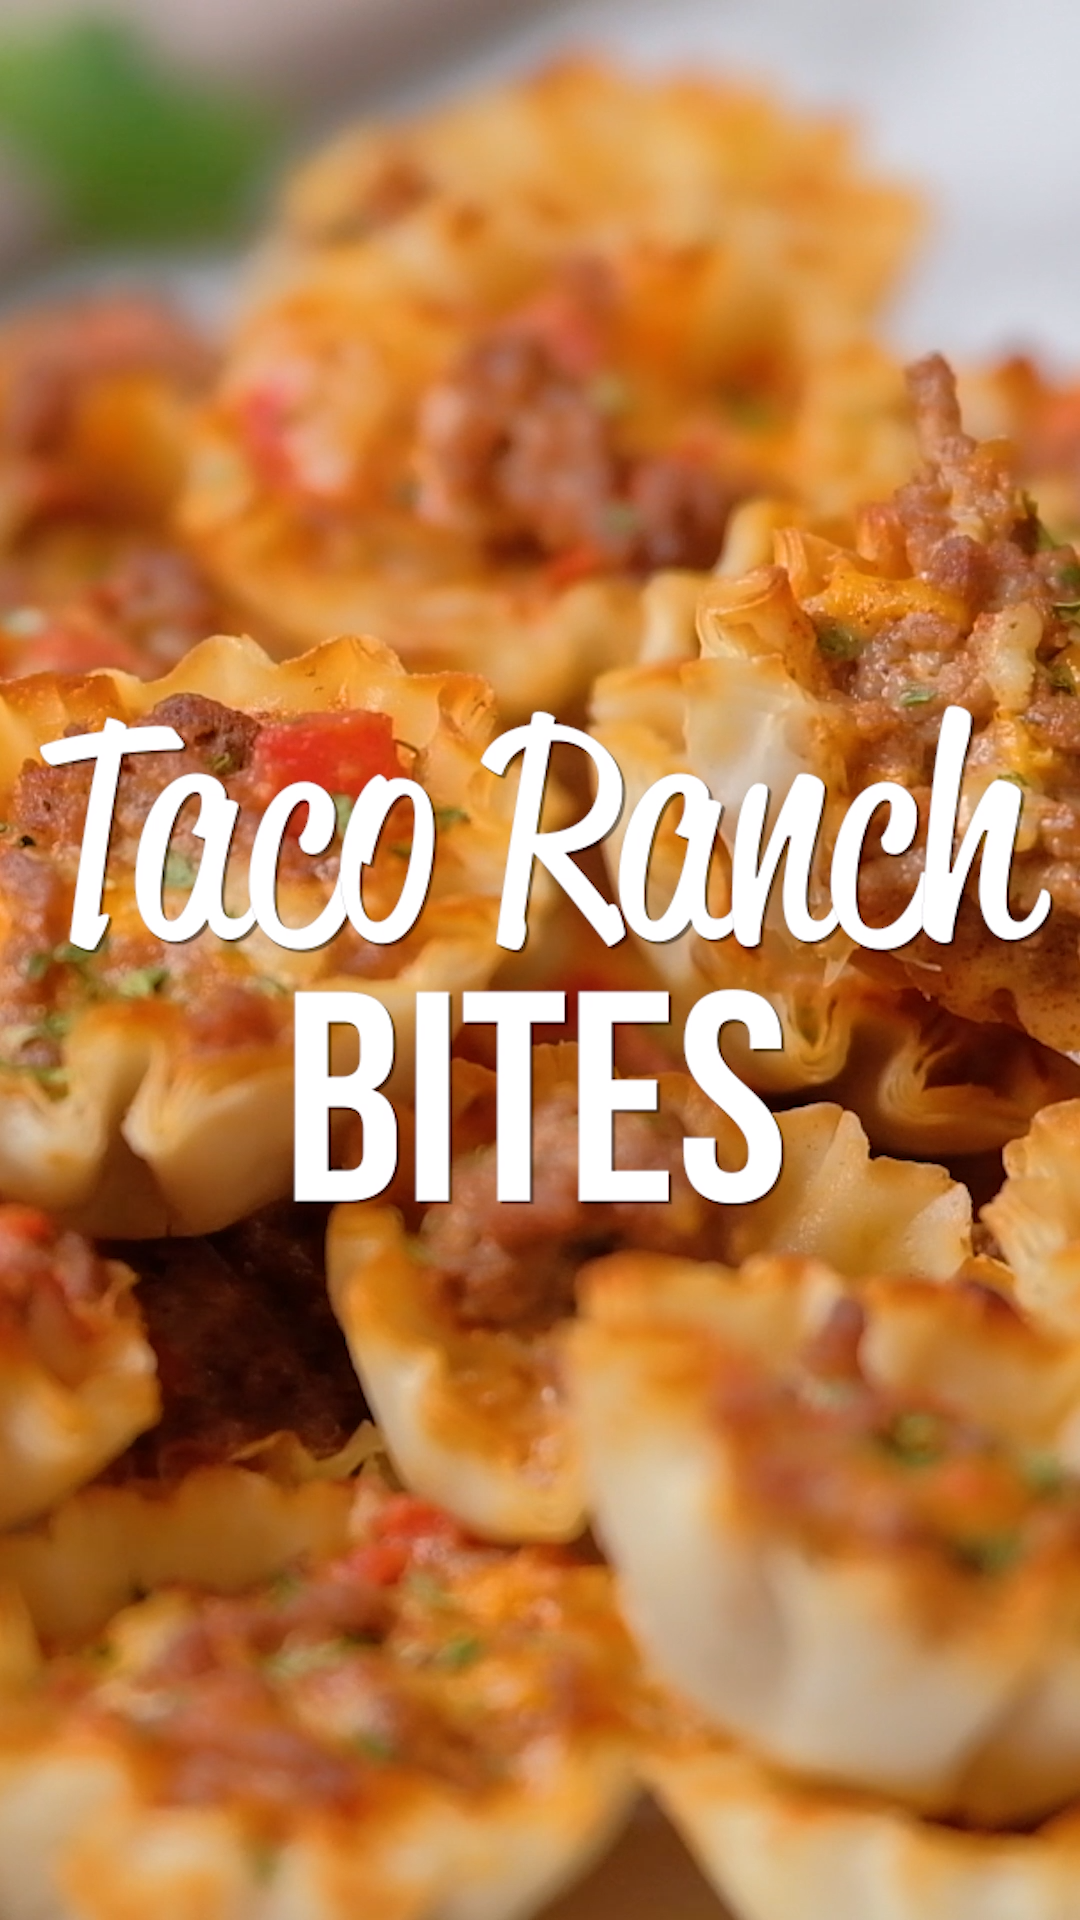 Taco Ranch Bites #maketacoseasoning